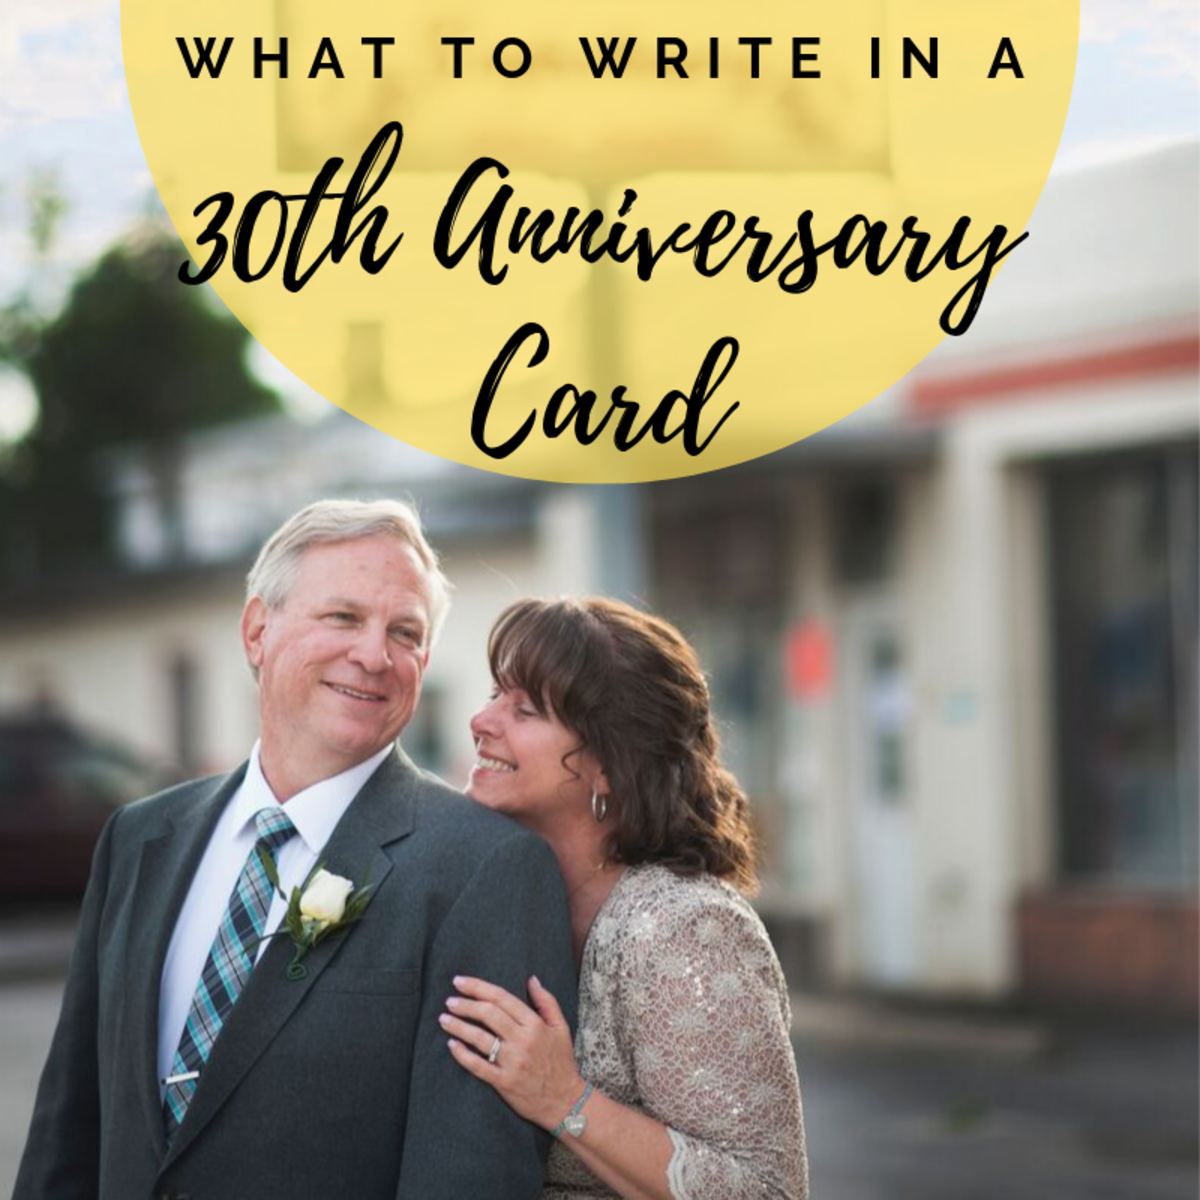 30th Anniversary Wishes, Quotes, and Poems to Write in a ...